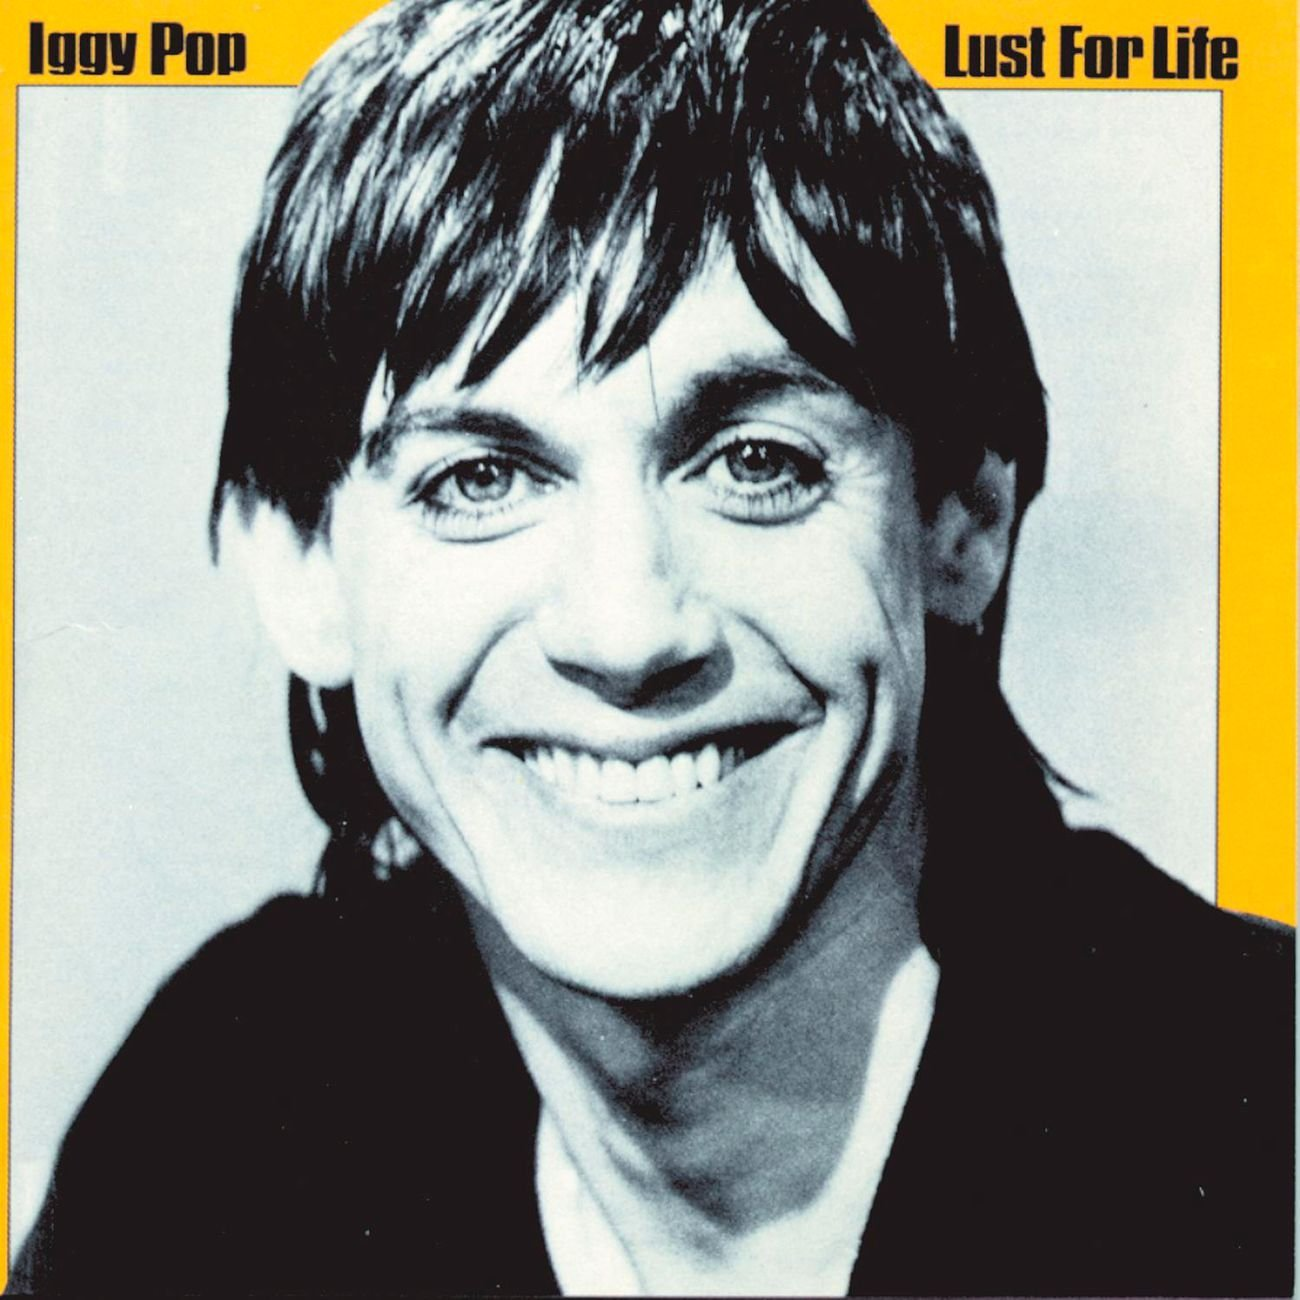 Iggy Pop,  Lust for life  (1977)